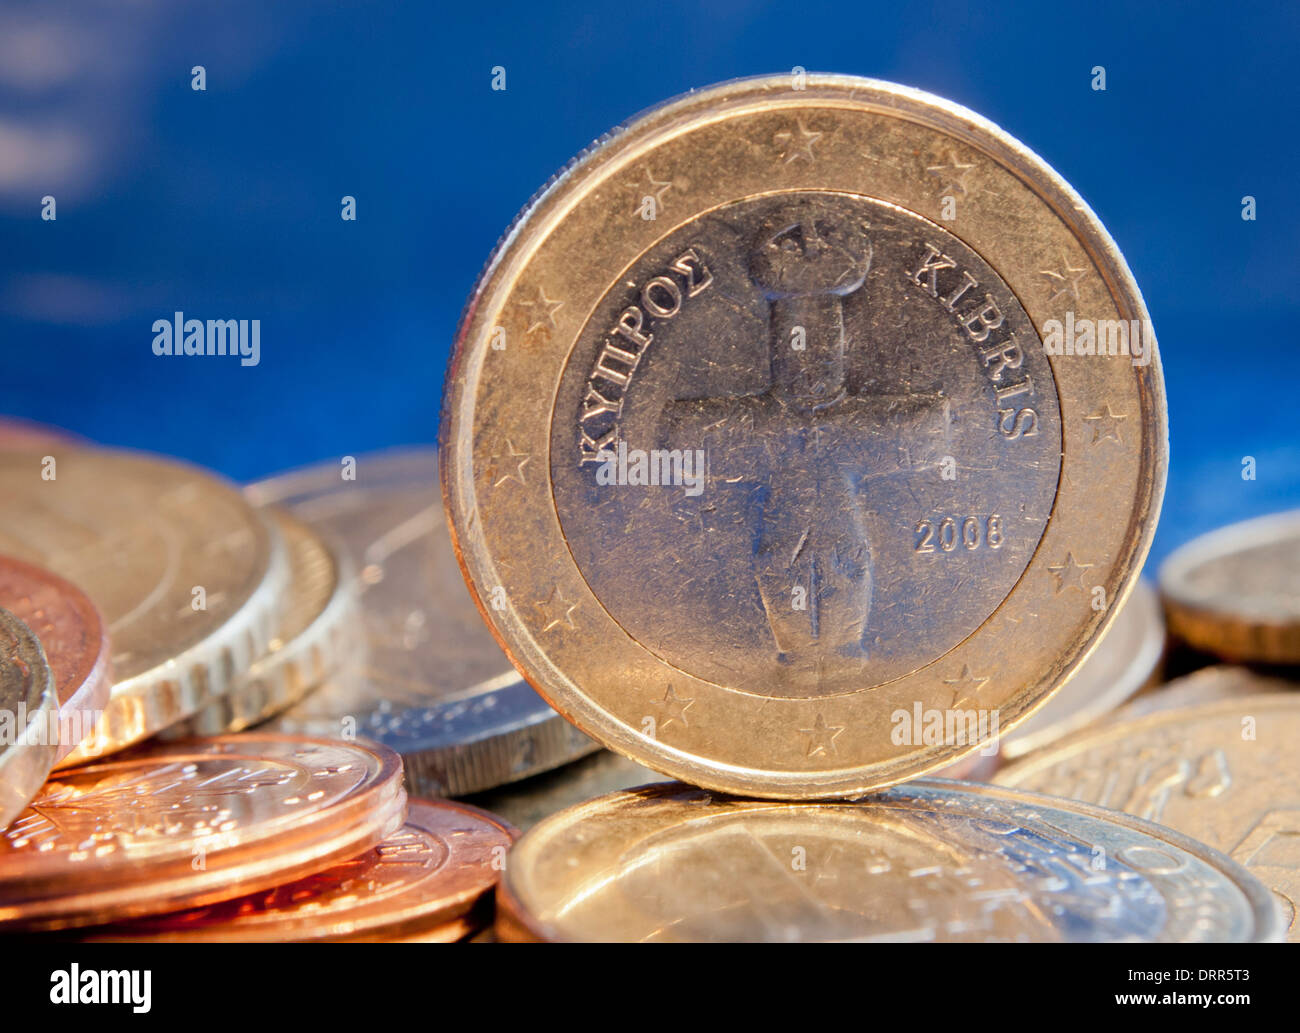 One Euro coin of Cyprus - backside showing the 'Idol of Pomos', a 5000 year old artefact - Stock Image